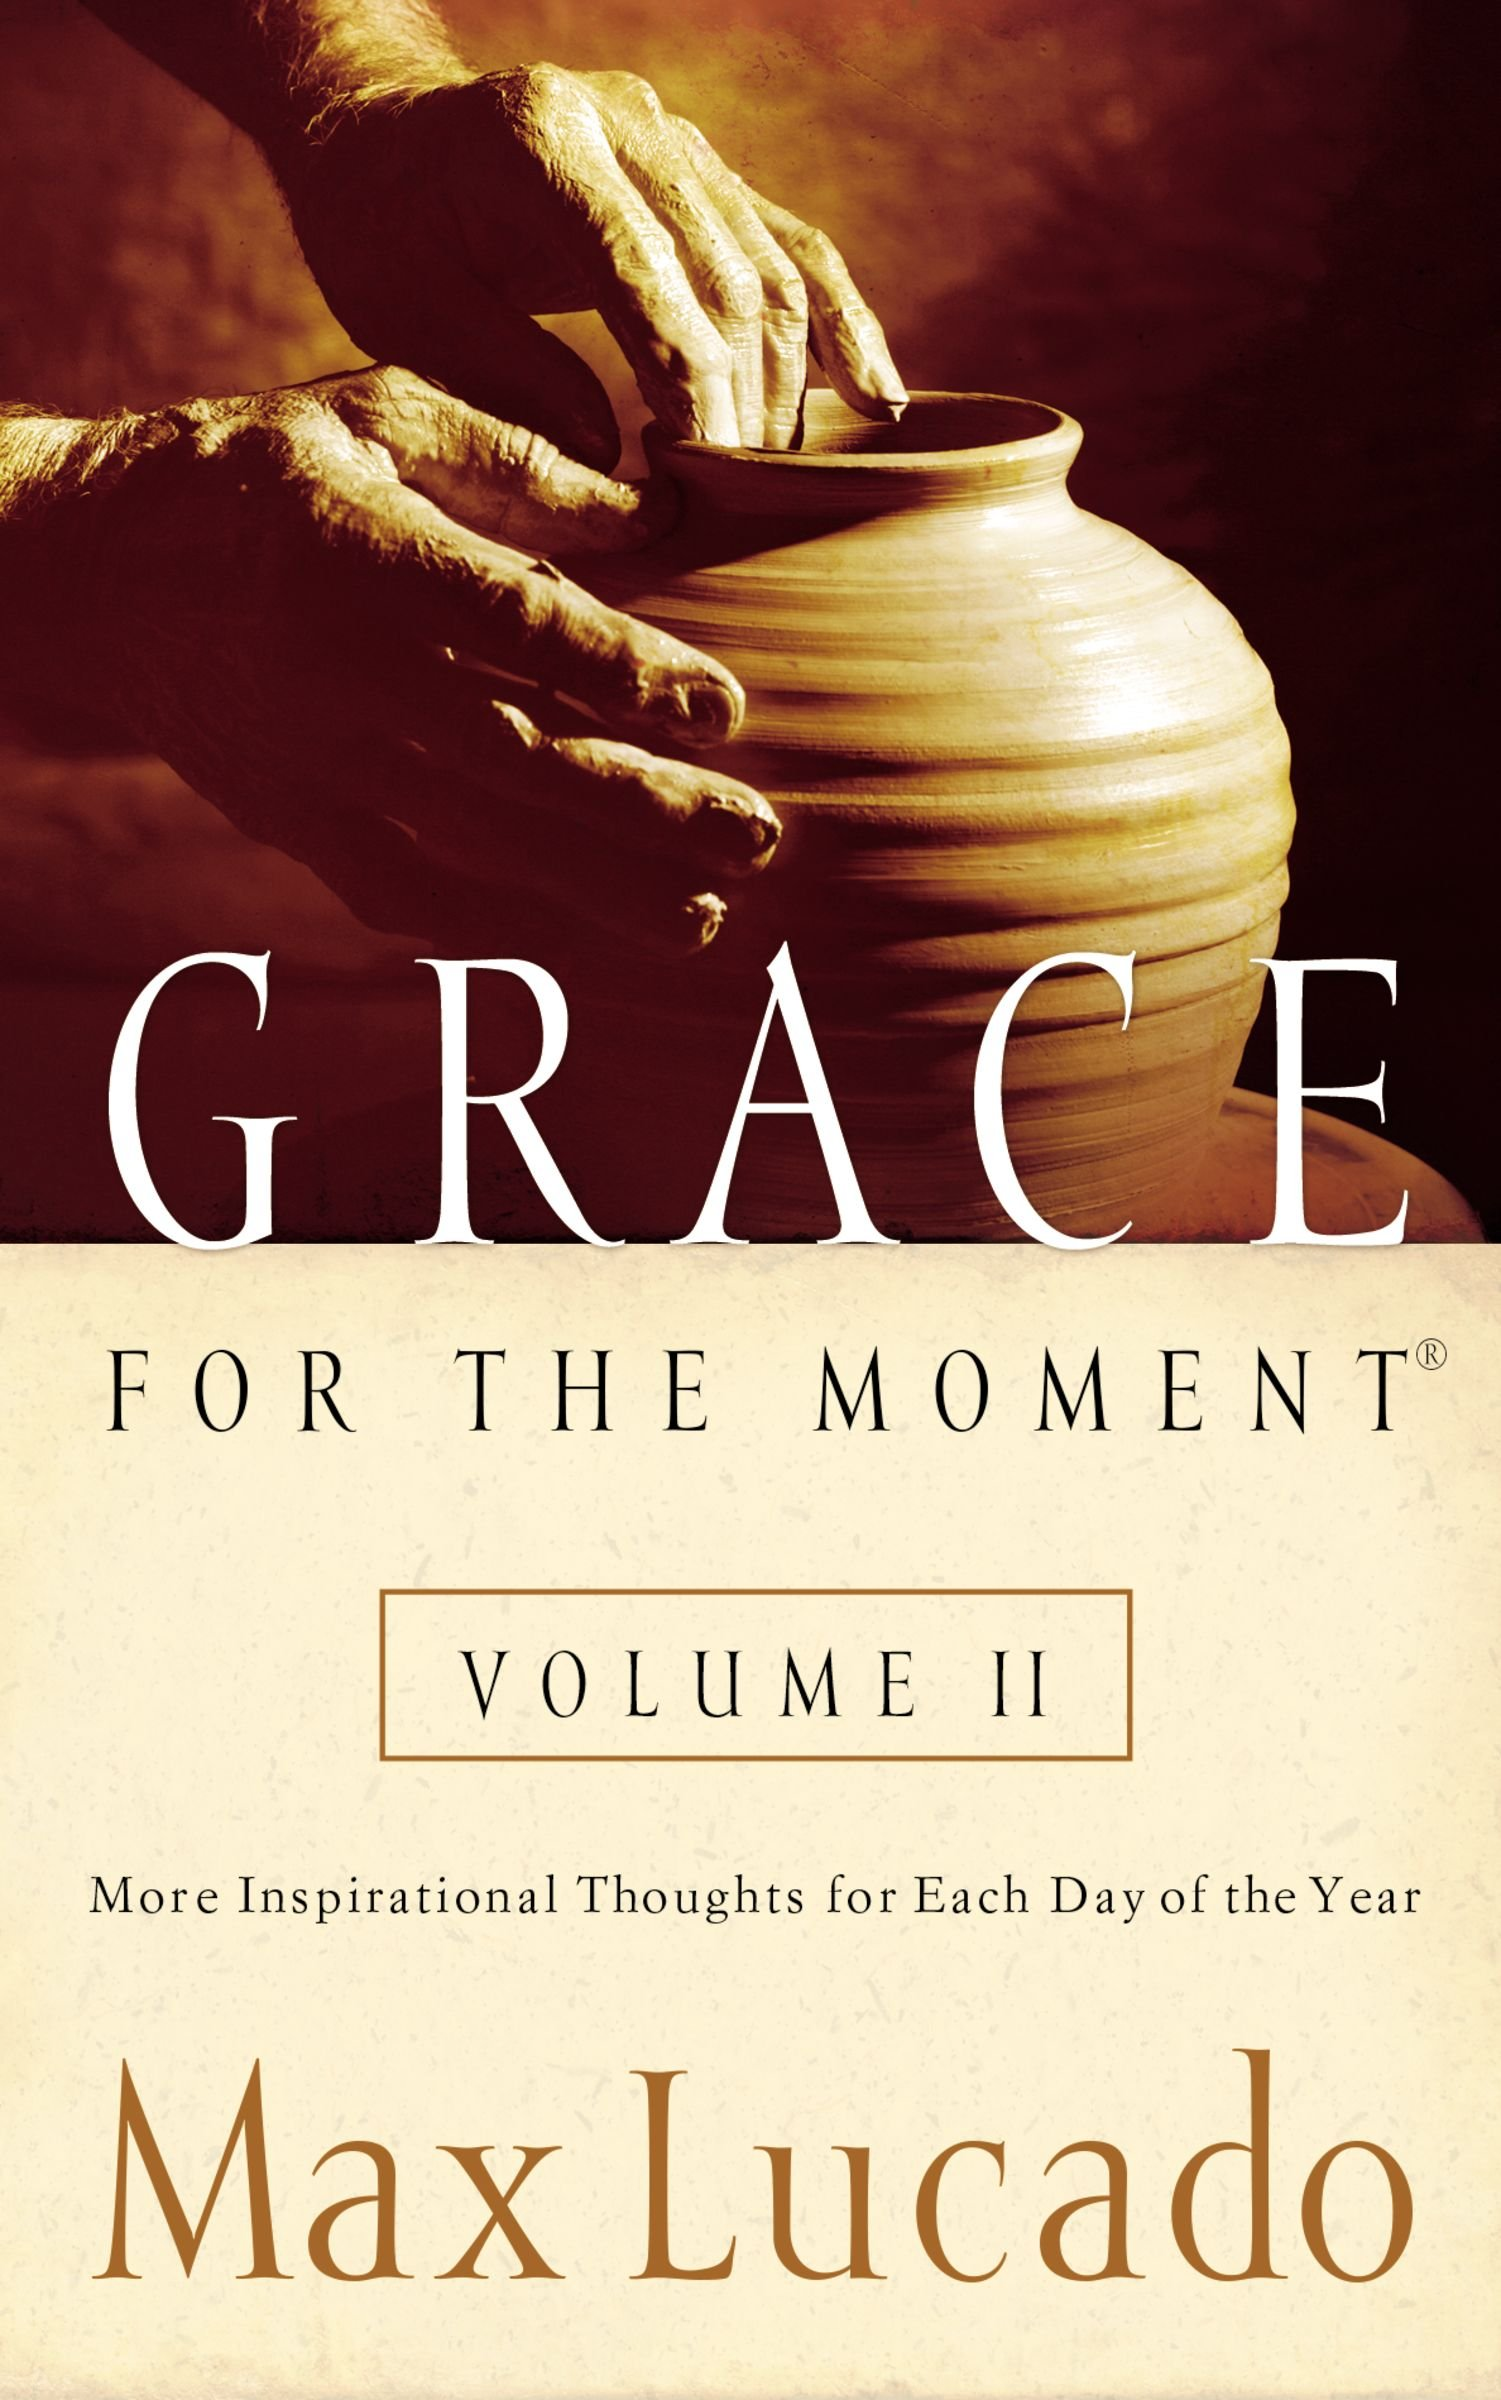 Grace for the Moment, Vol. 2: More Inspirational Thoughts for Each Day of  the Year: Terri A. Gibbs: 9781404100978: Amazon.com: Books